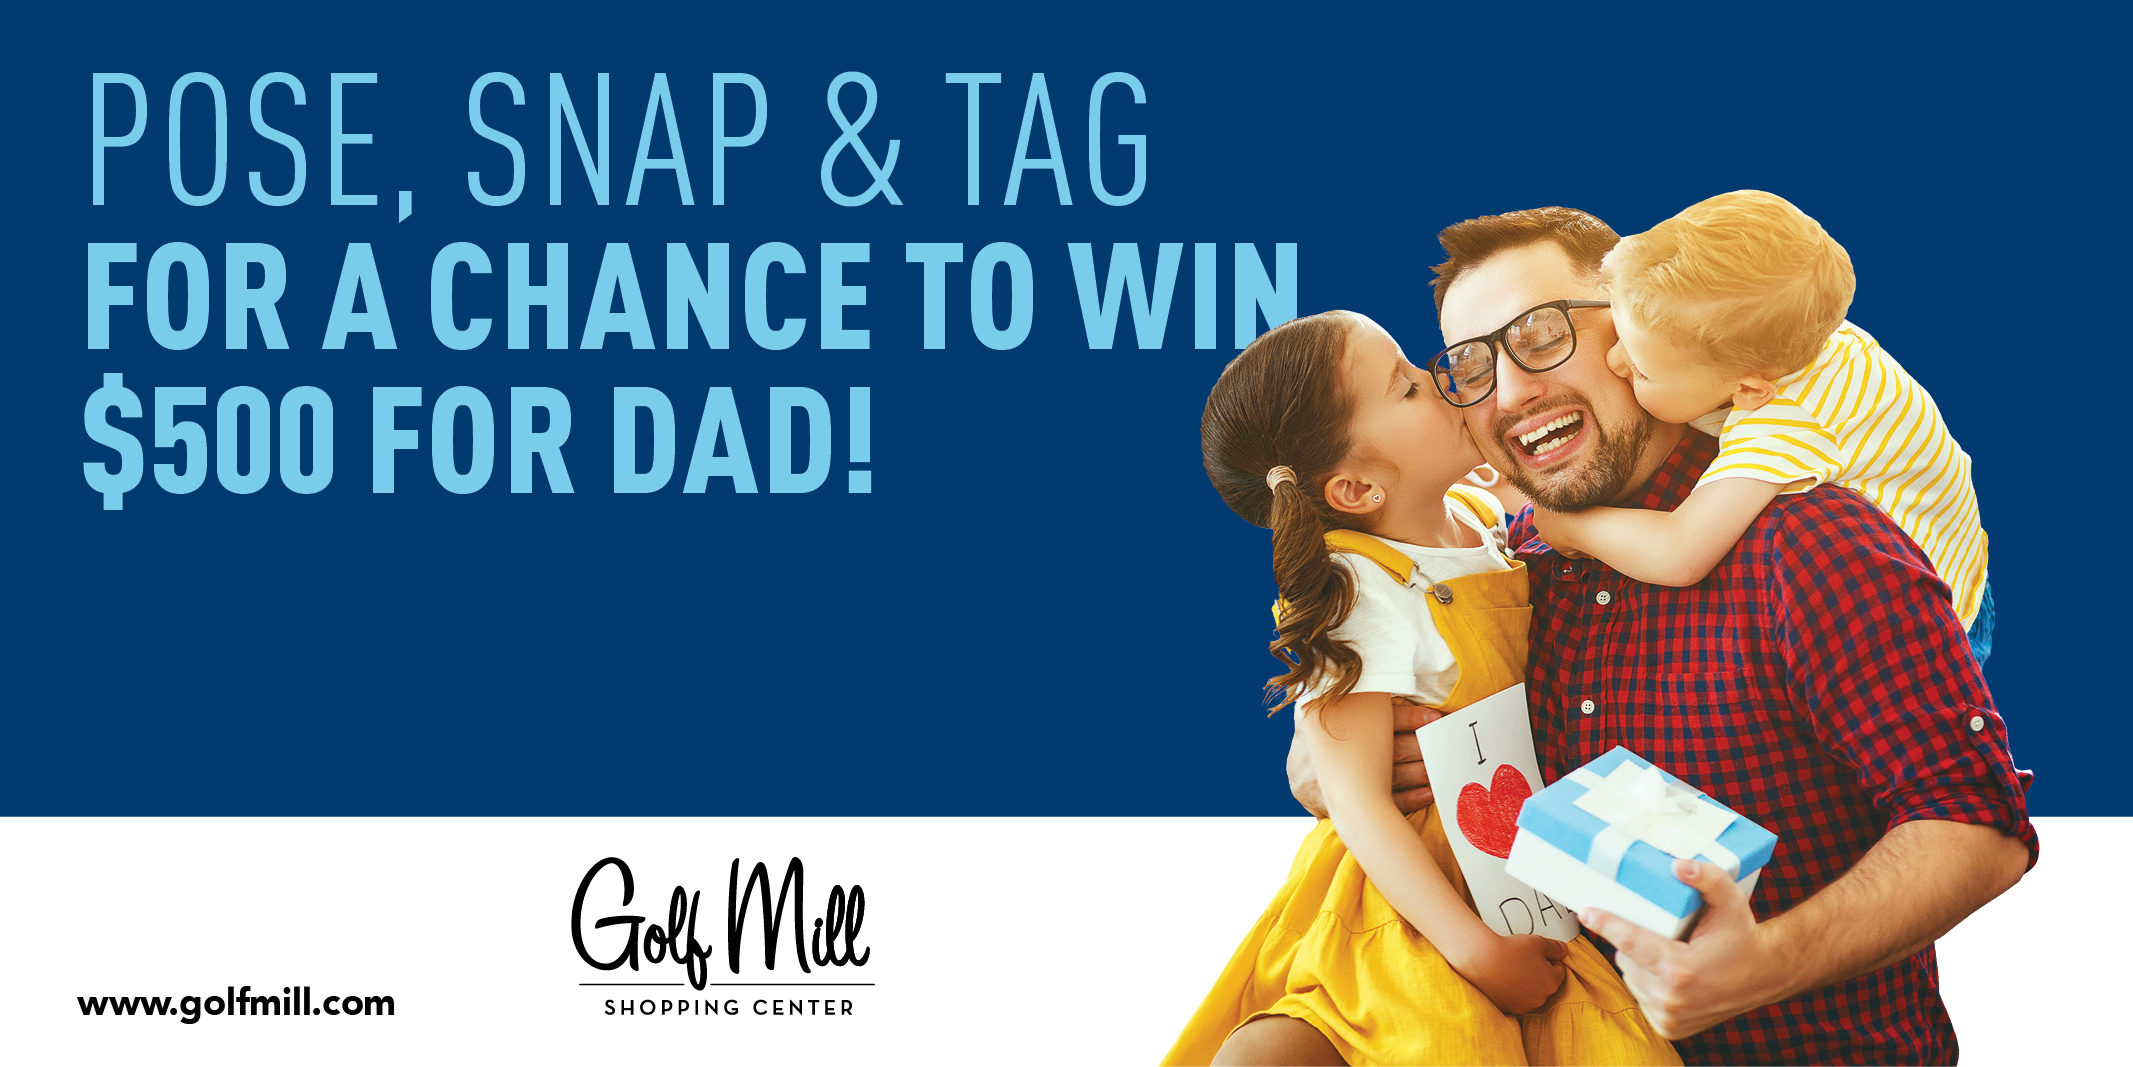 Father's Day #GolfMillFamily Giveaway